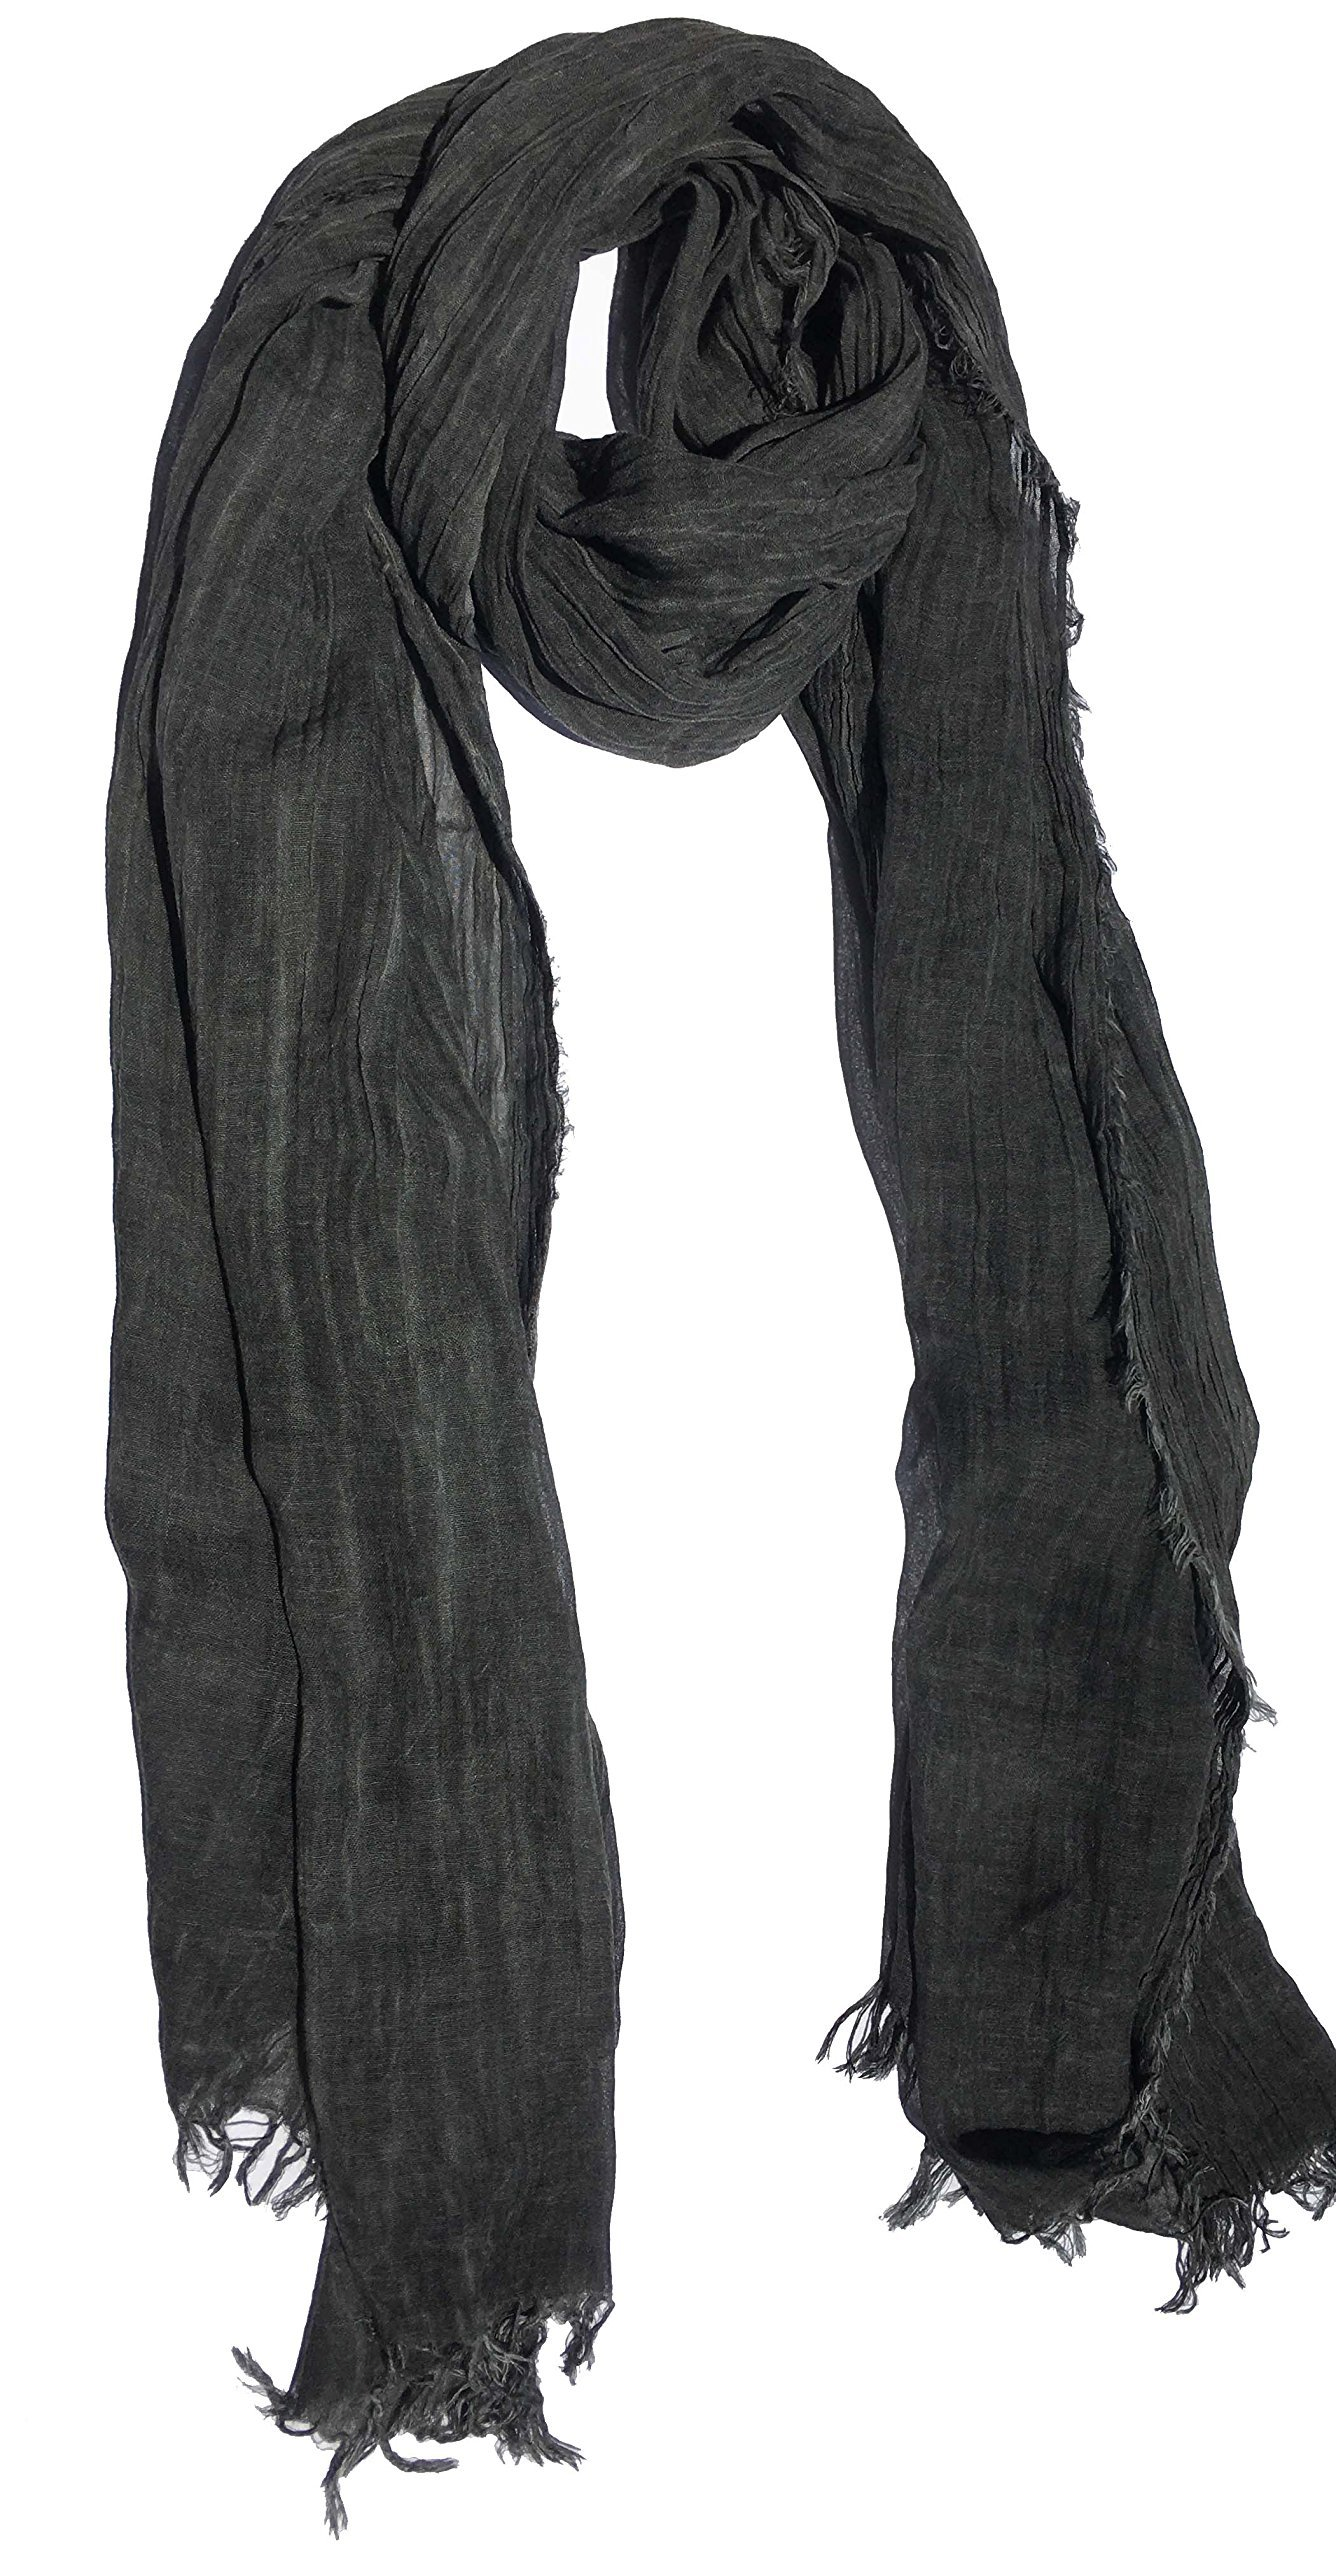 100% Pure Natural Cotton, No Synthetic Fibers, Unisex, Scarves - Multi Colors/Styles (Charcoal Gray)